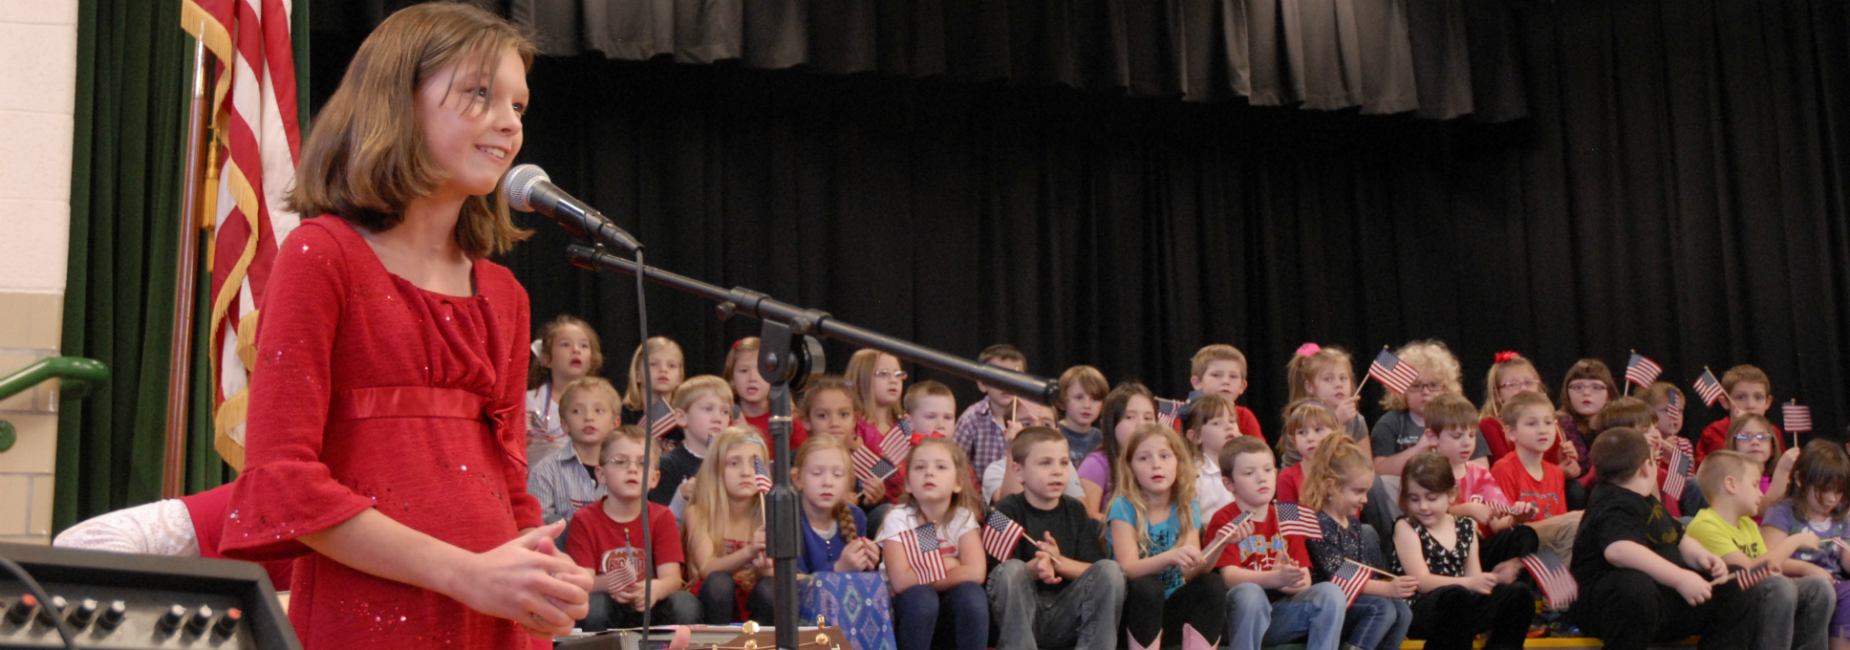 Sugar Grove Elementary student signing at Veterans Day assembly